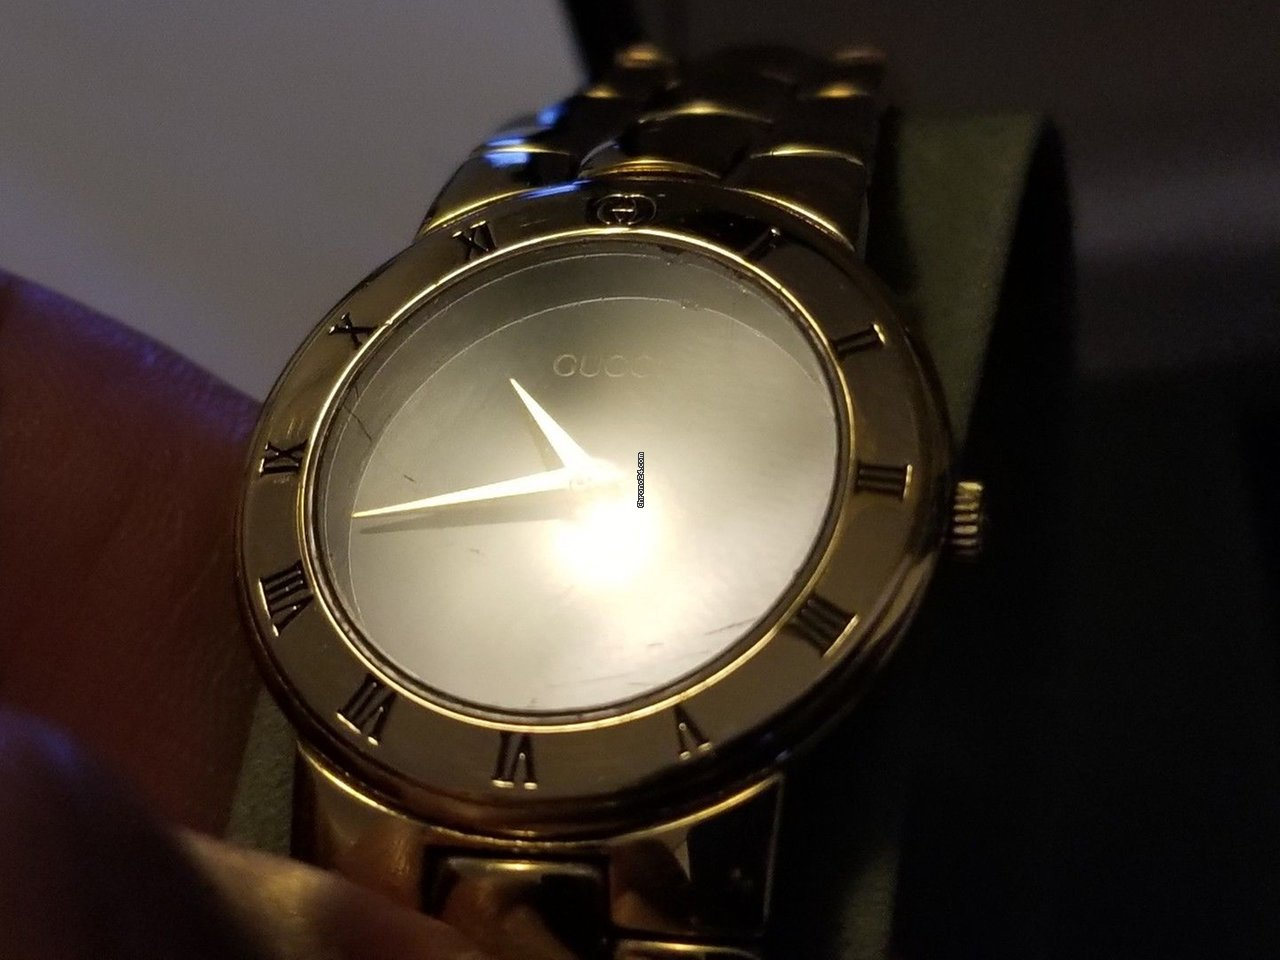 d148ec316d8 Gucci Vintage Gucci 3300.2.l 18k Gold Plated Ladies Quartz... for  450 for  sale from a Trusted Seller on Chrono24